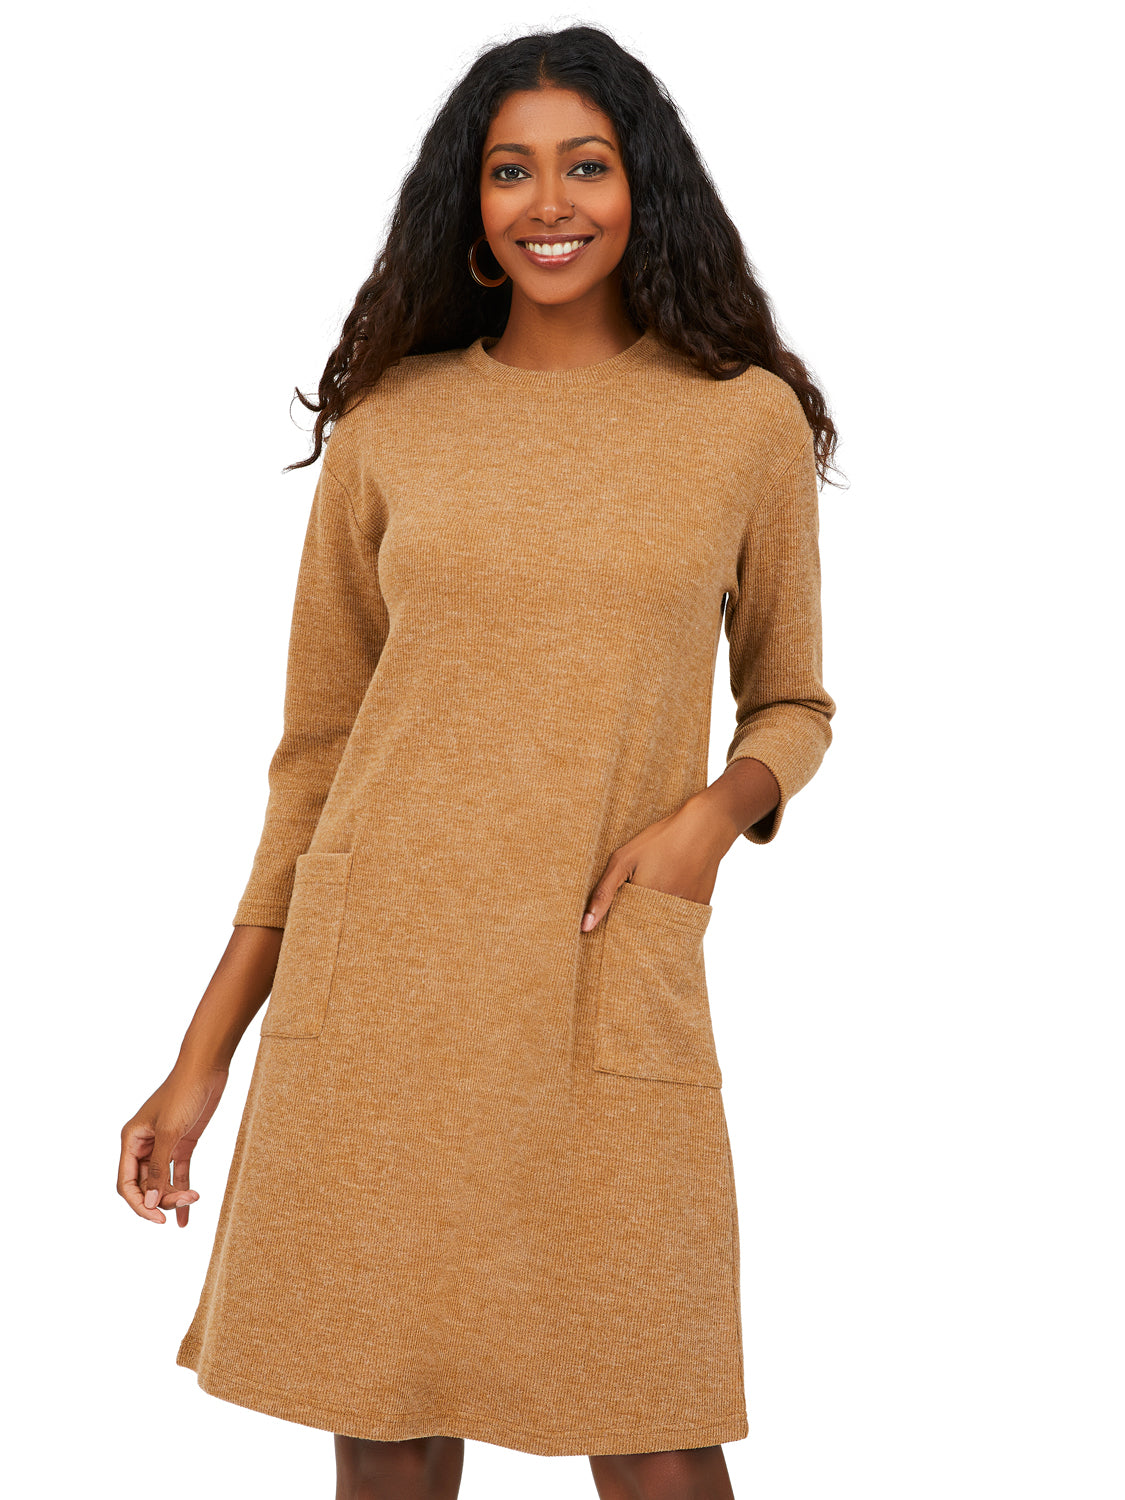 ¾ Sleeve Rib Knit A-Line Dress